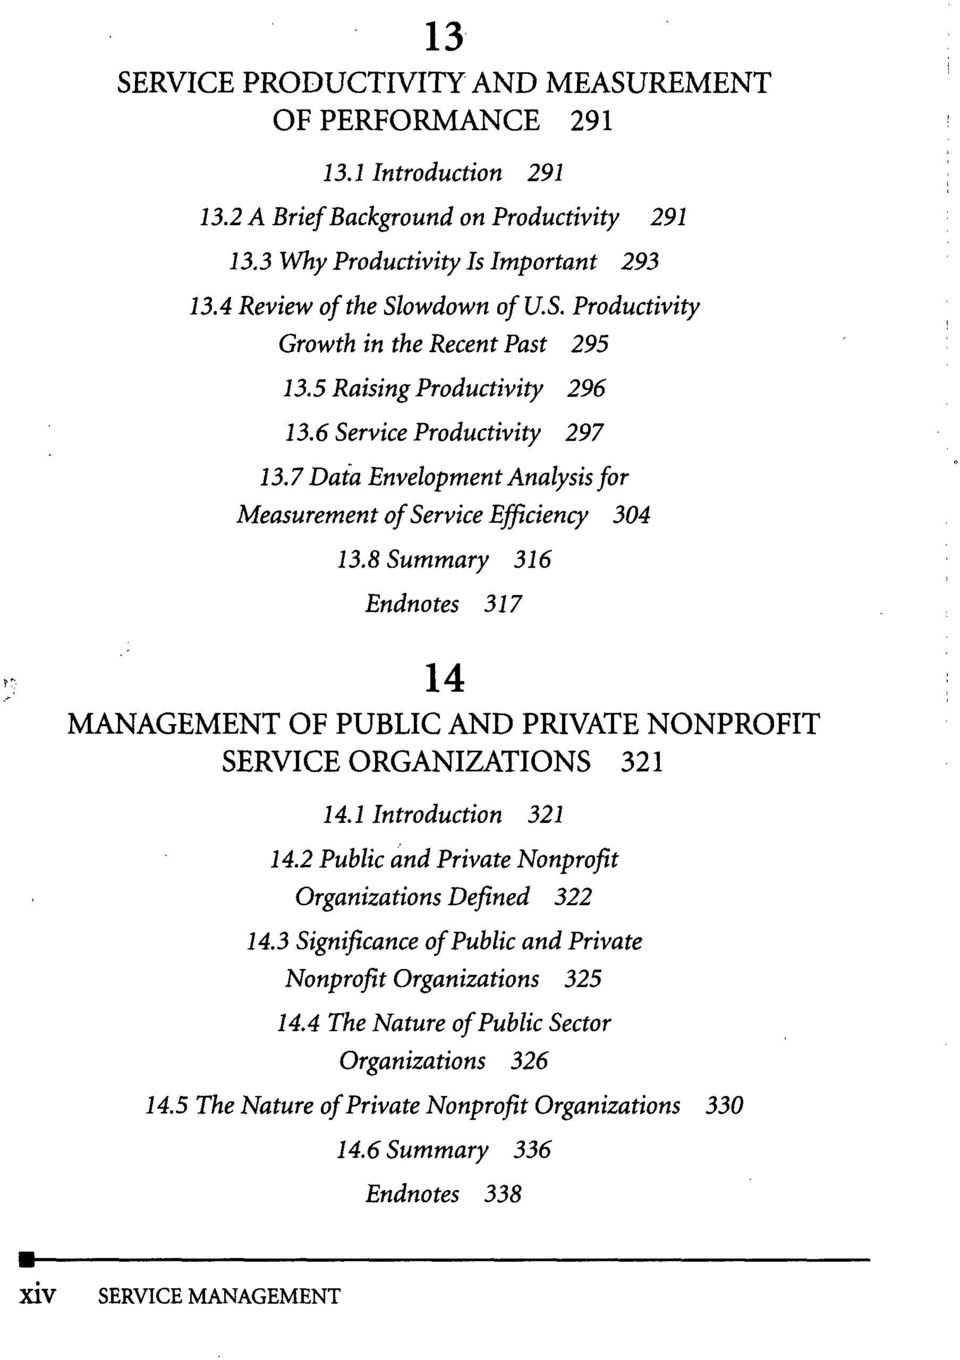 8 Summary 316 Endnotes 317 14 MANAGEMENT OF PUBLIC AND PRIVATE NONPROFIT SERVICE ORGANIZATIONS 321 14.1 Introduction 321 14.2 Public and Private Nonprofit Organizations Defined 322 14.